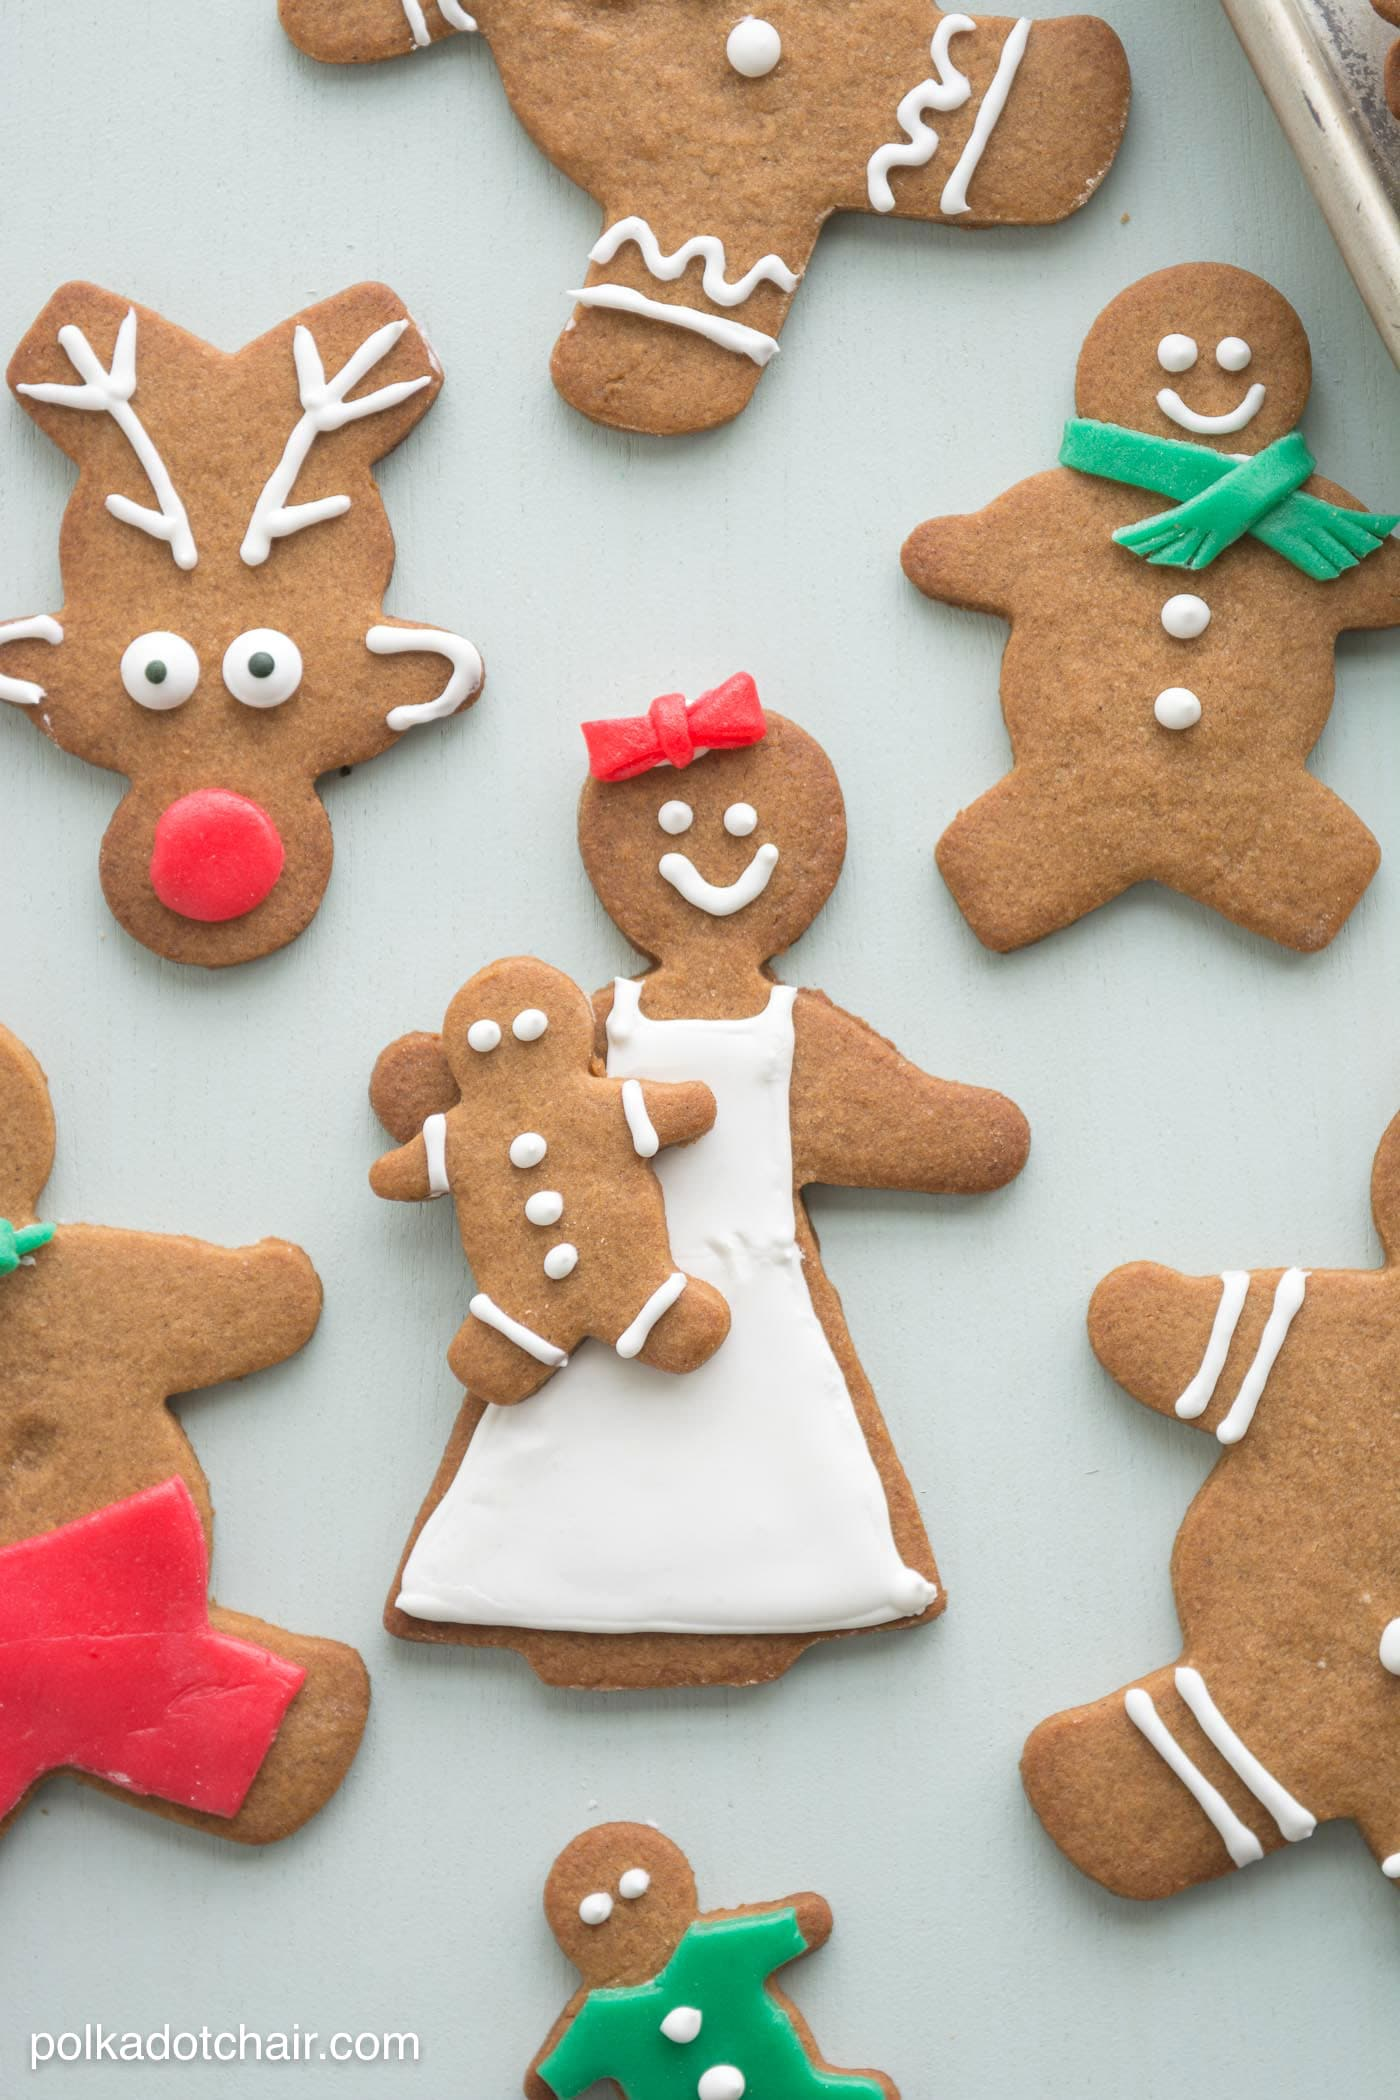 Phenomenal Gingerbread Cookie Decorating Ideas The Polka Dot Chair Easy Diy Christmas Decorations Tissureus